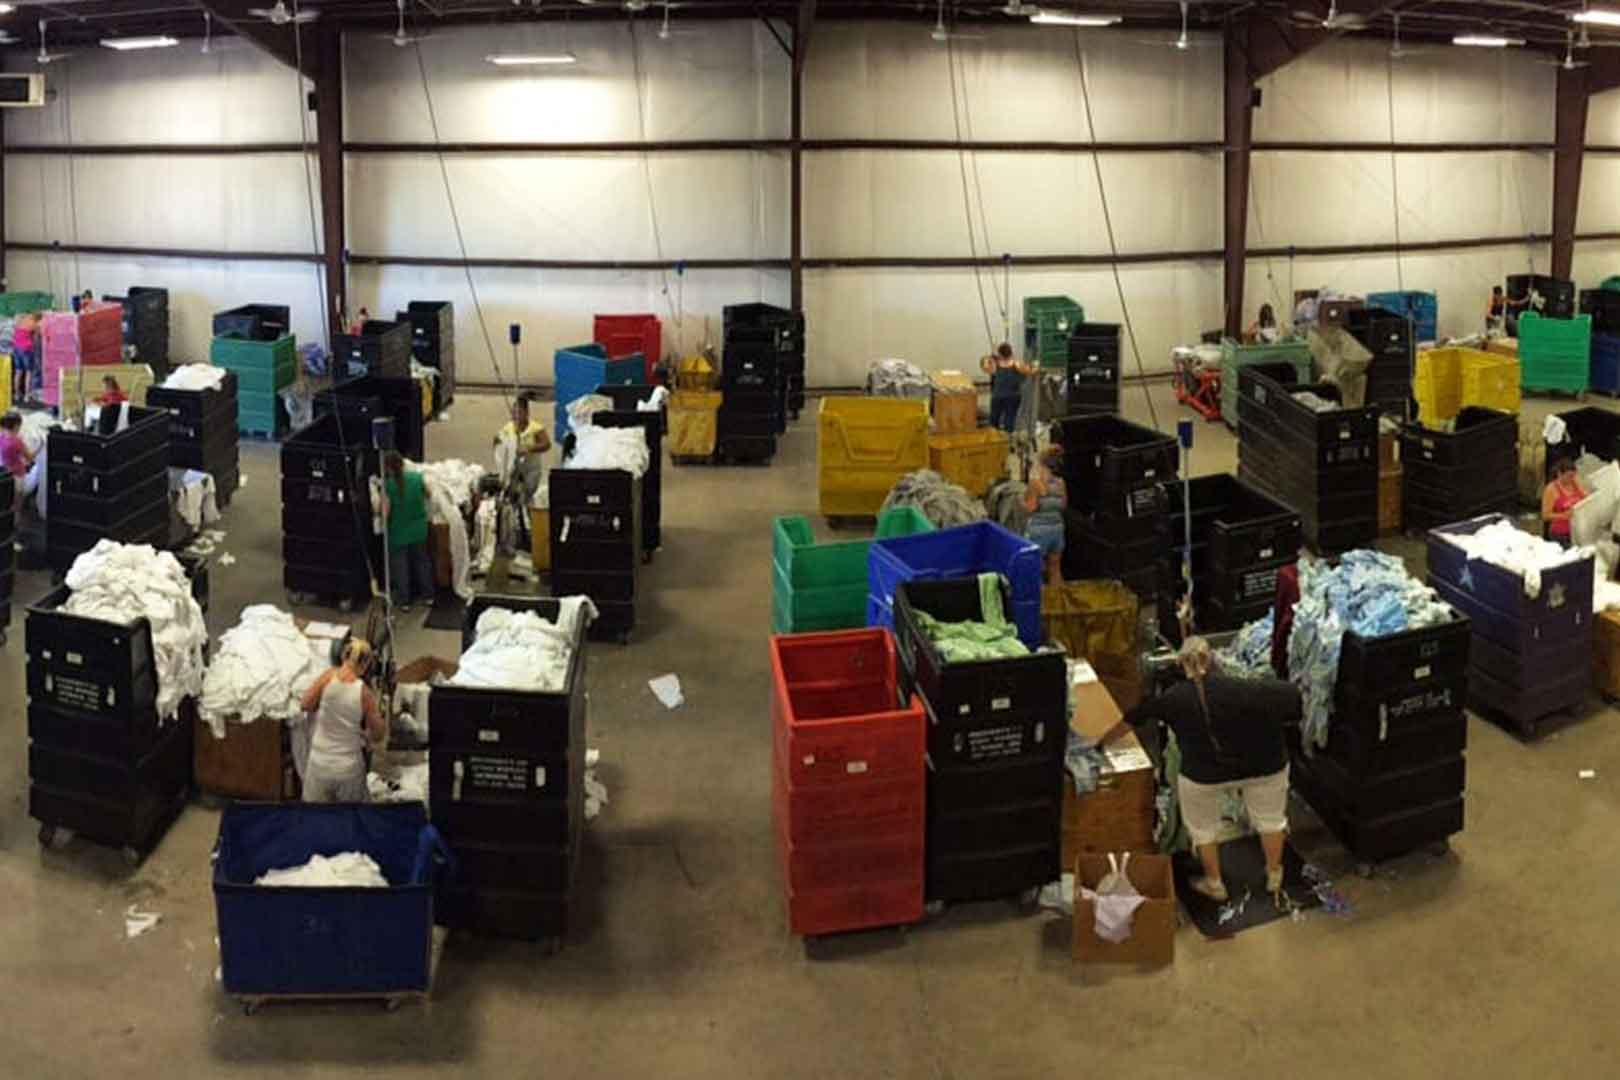 warehouse view of sorting bins